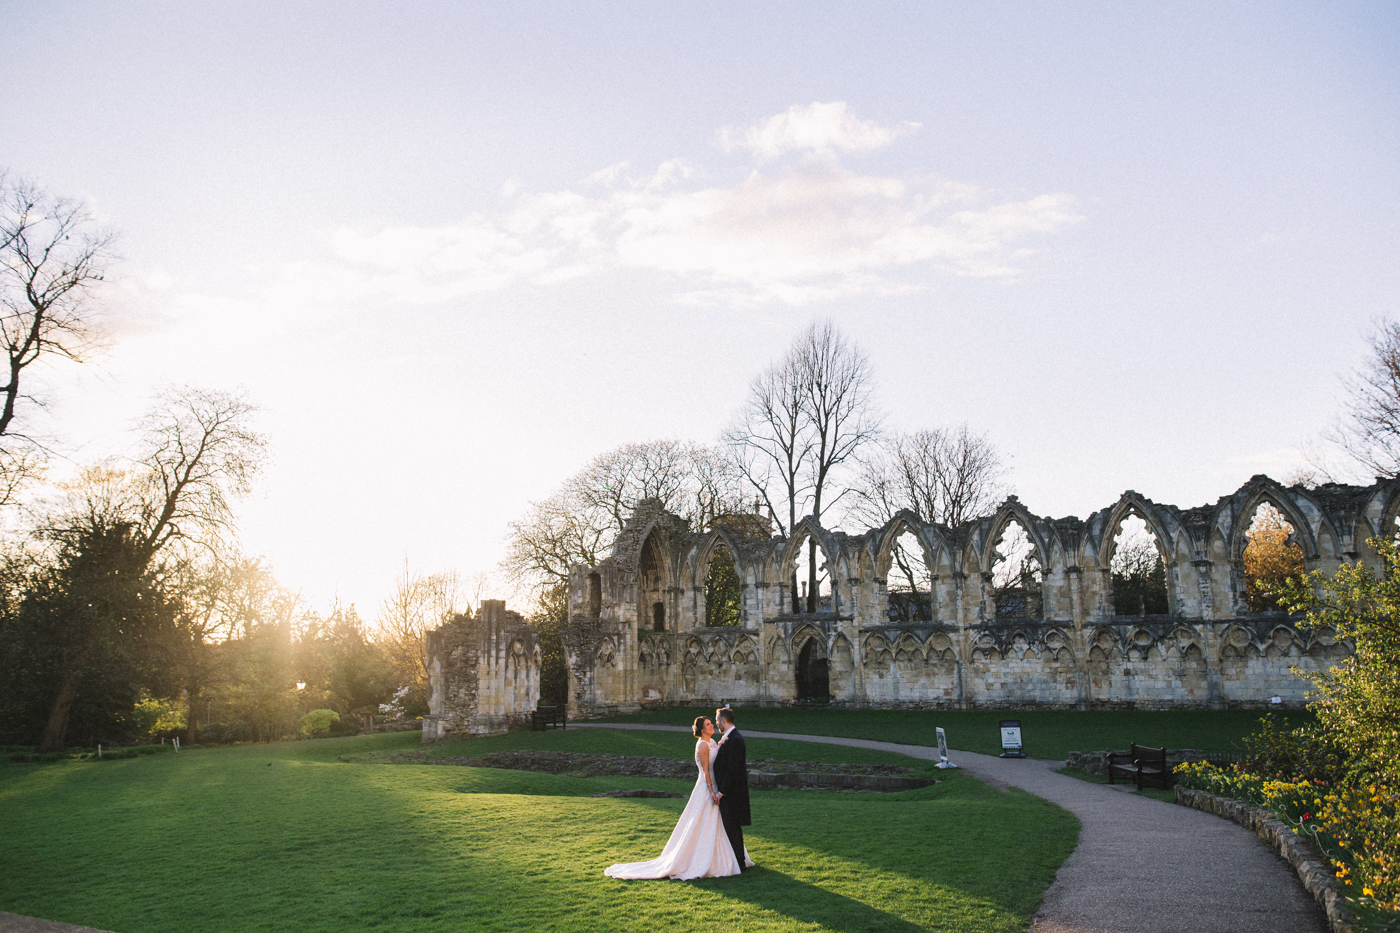 hospitium-wedding-york-photography